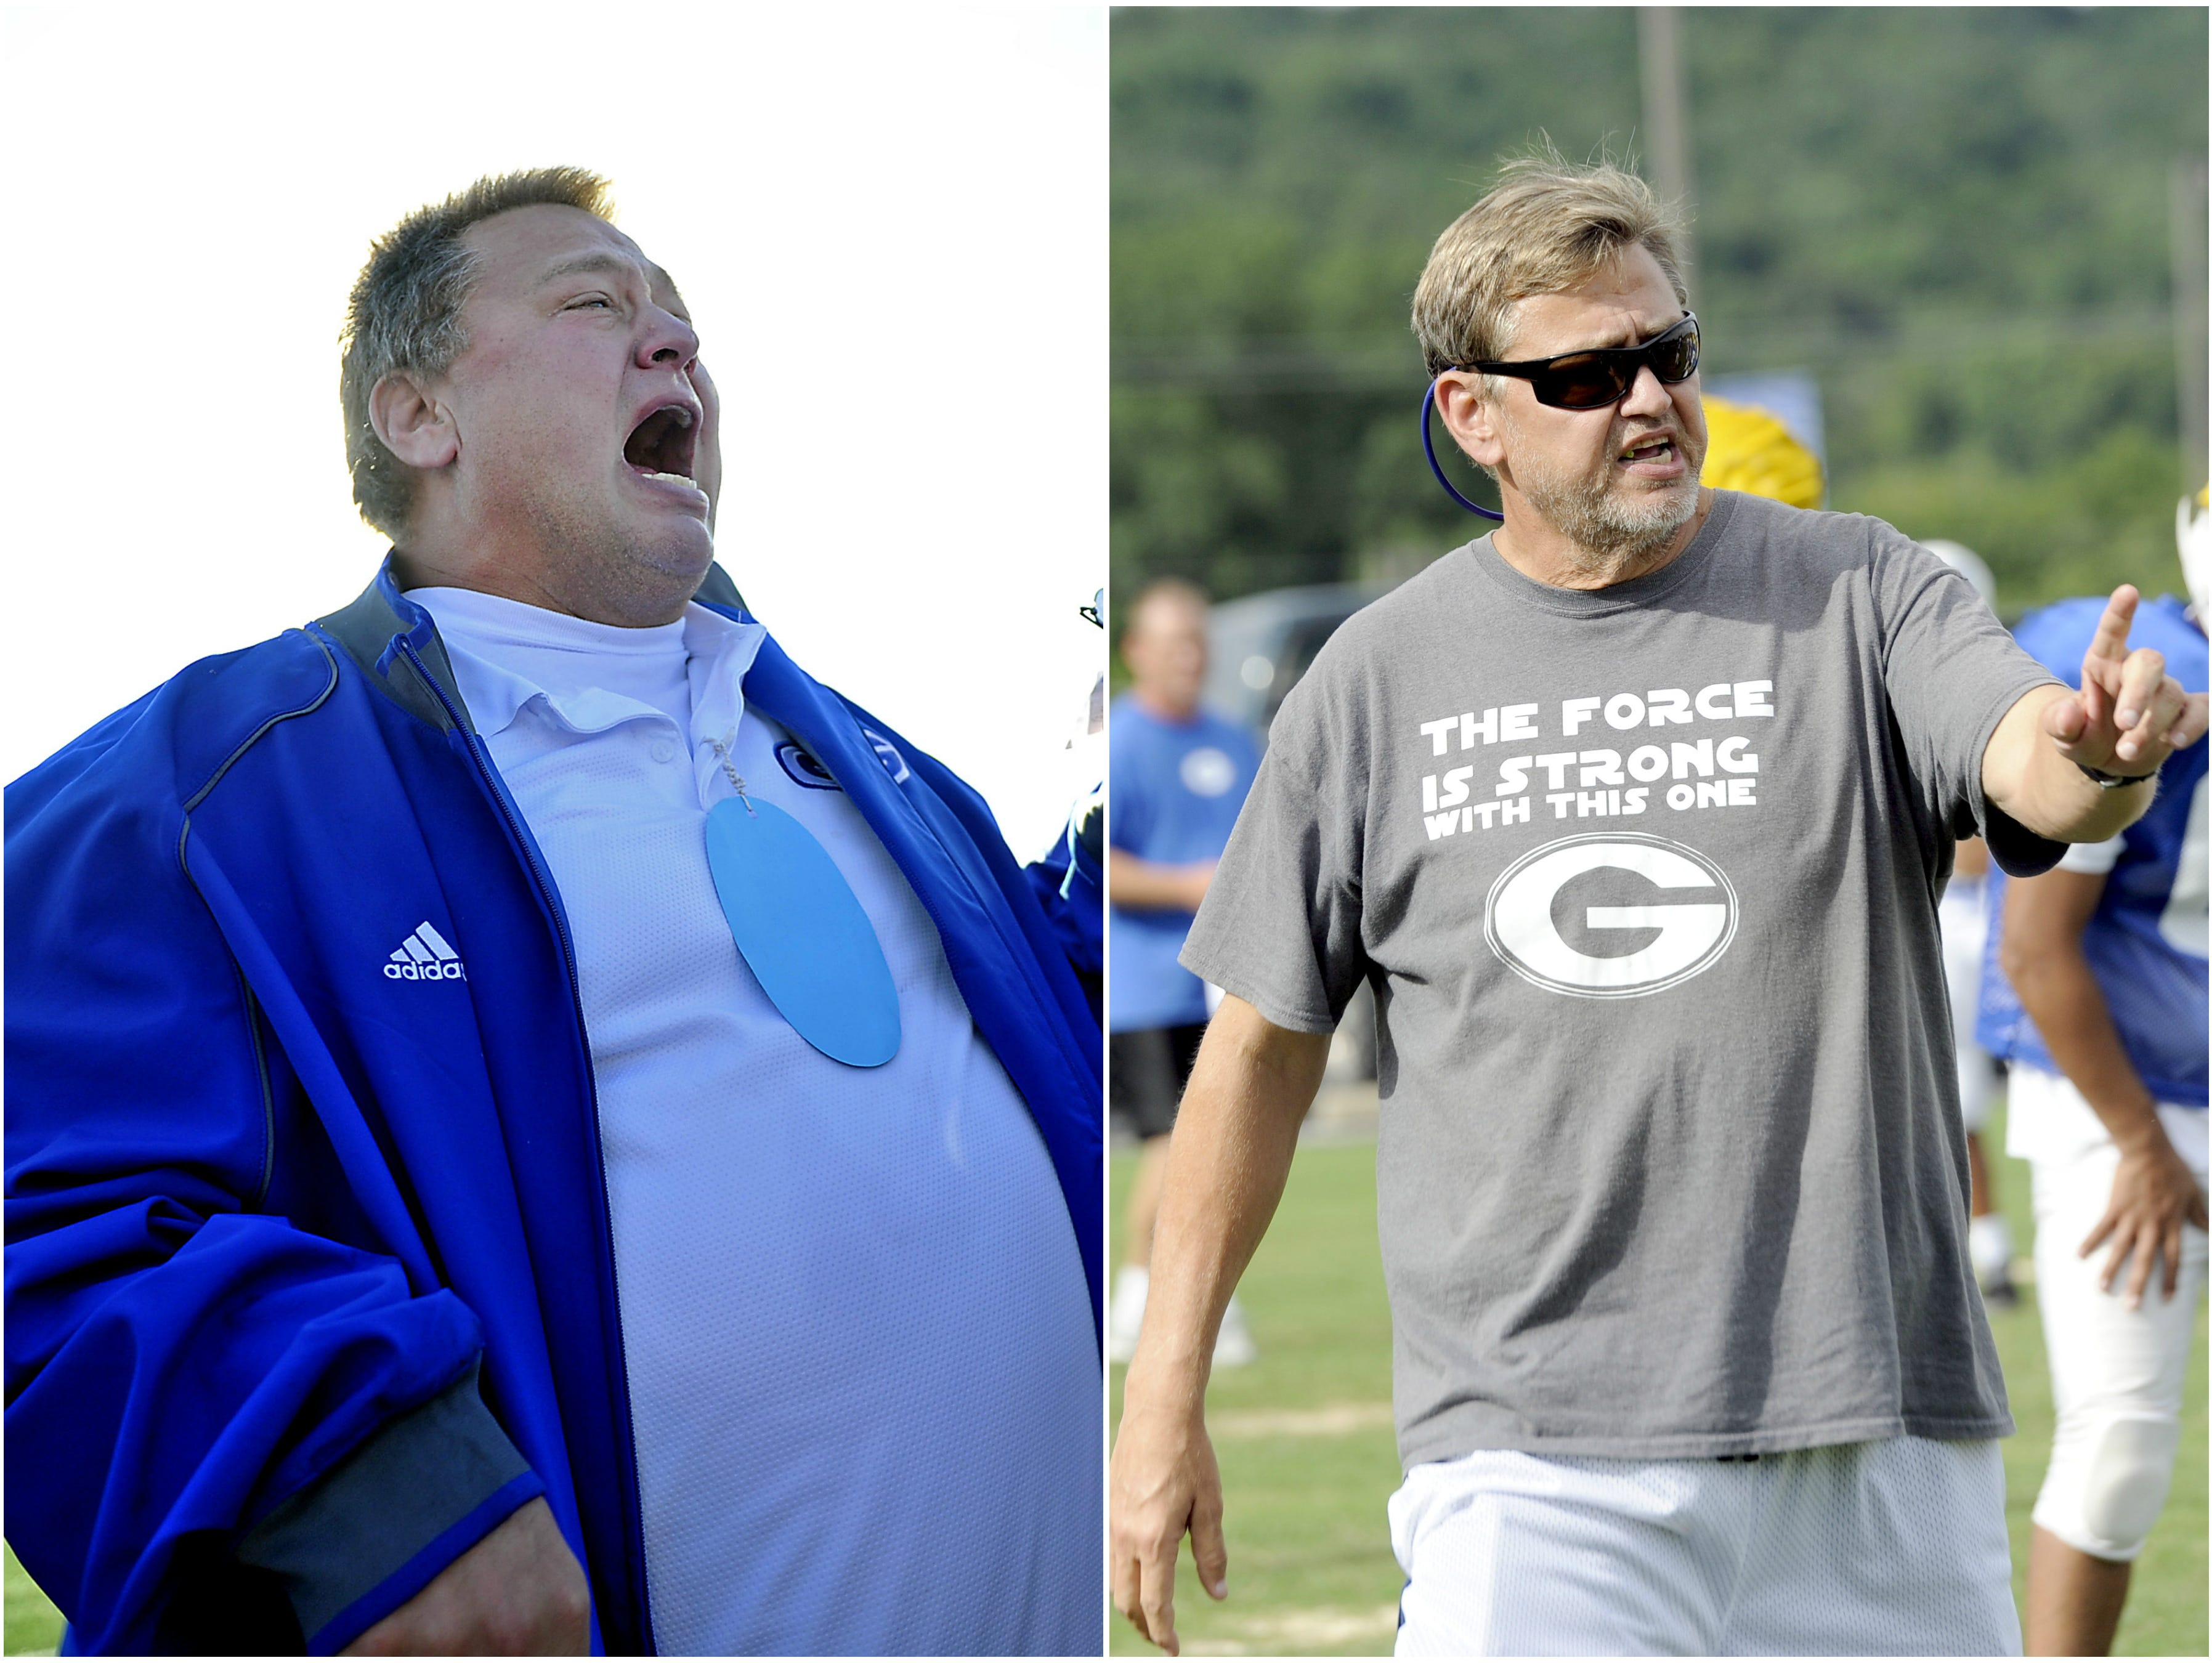 Ron Marshall is pictured after winning the Class 1A state title in 2012 (at left) and then at a recent practice this season.